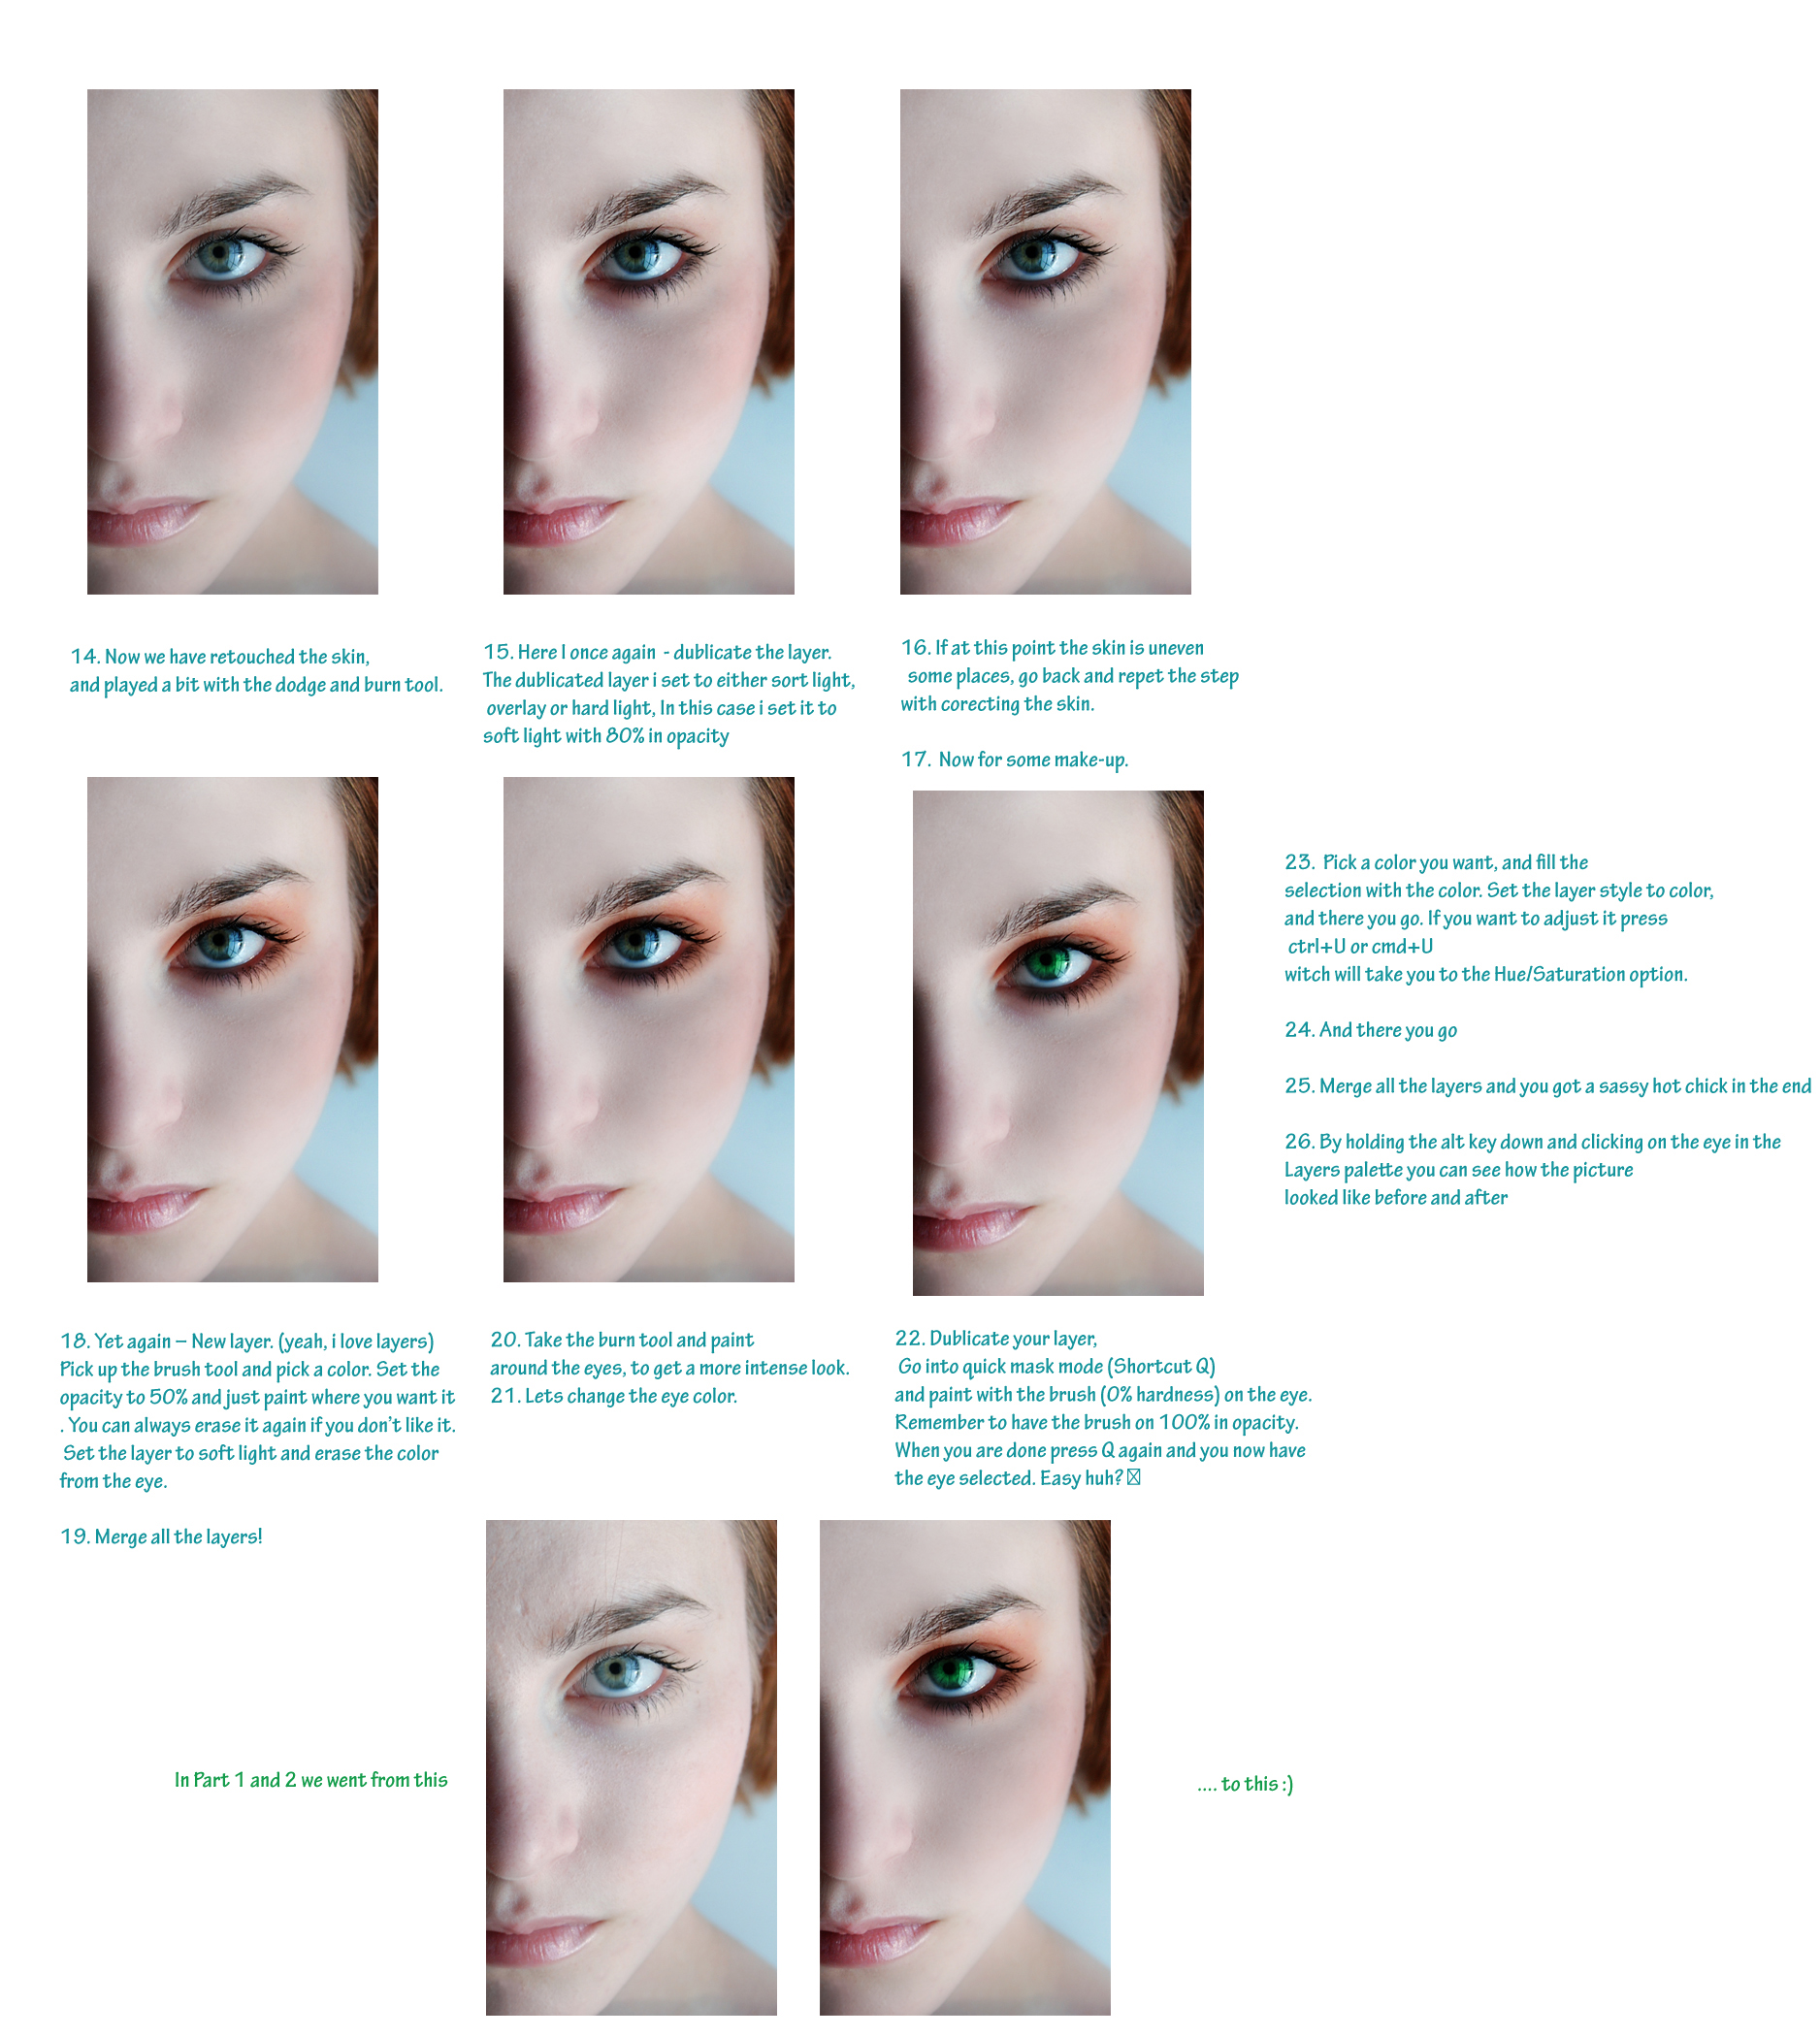 Pro skin retouch tutorial 2 by initio on deviantart pro skin retouch tutorial 2 by initio baditri Image collections